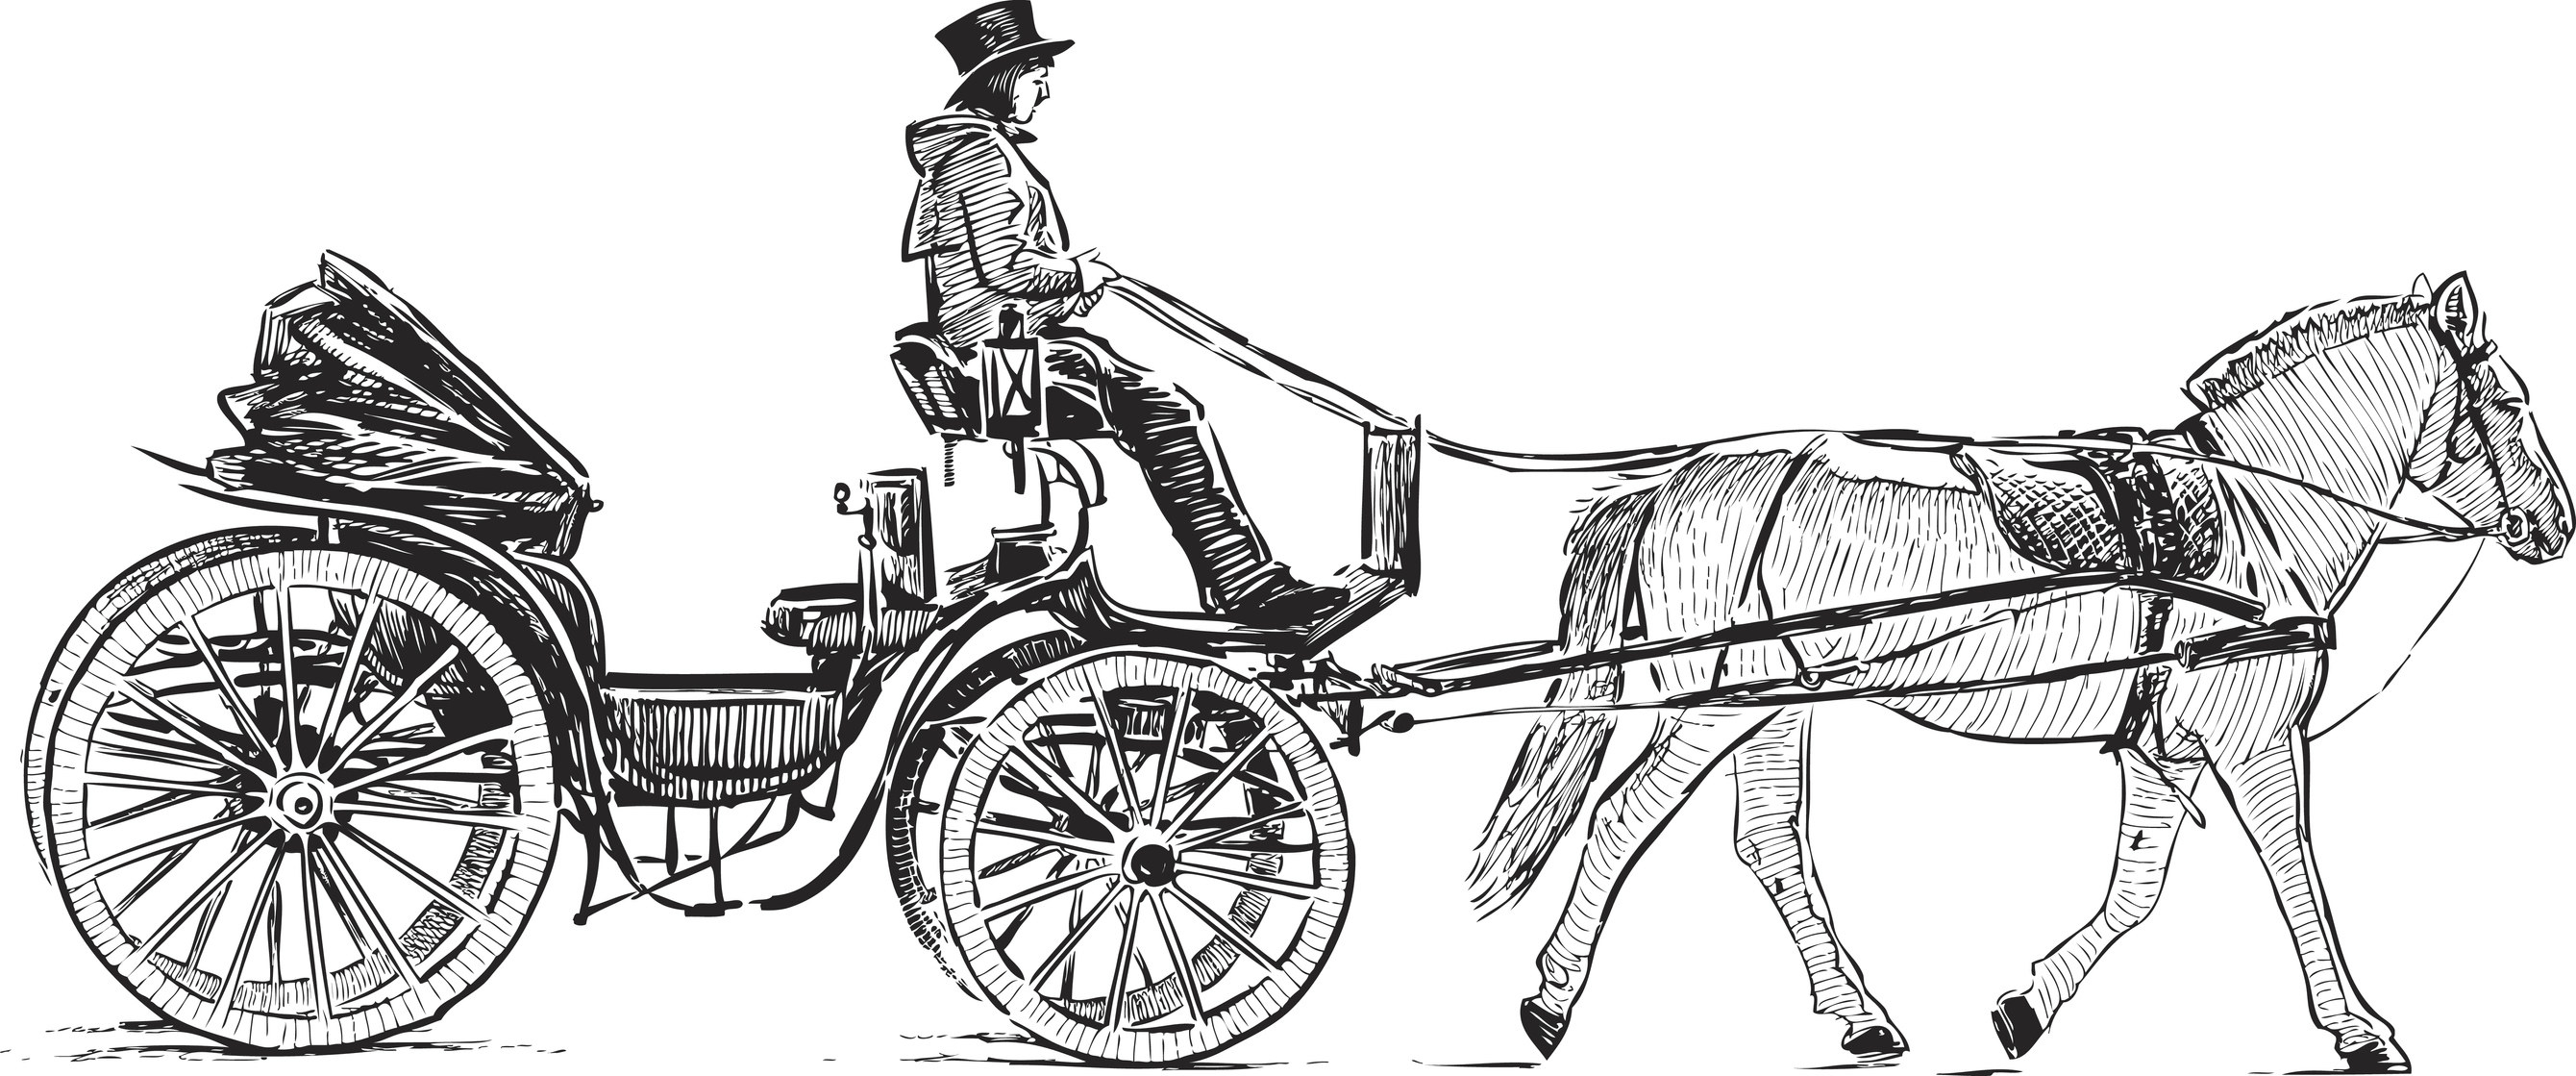 A sketch of a horse-drawn carriage